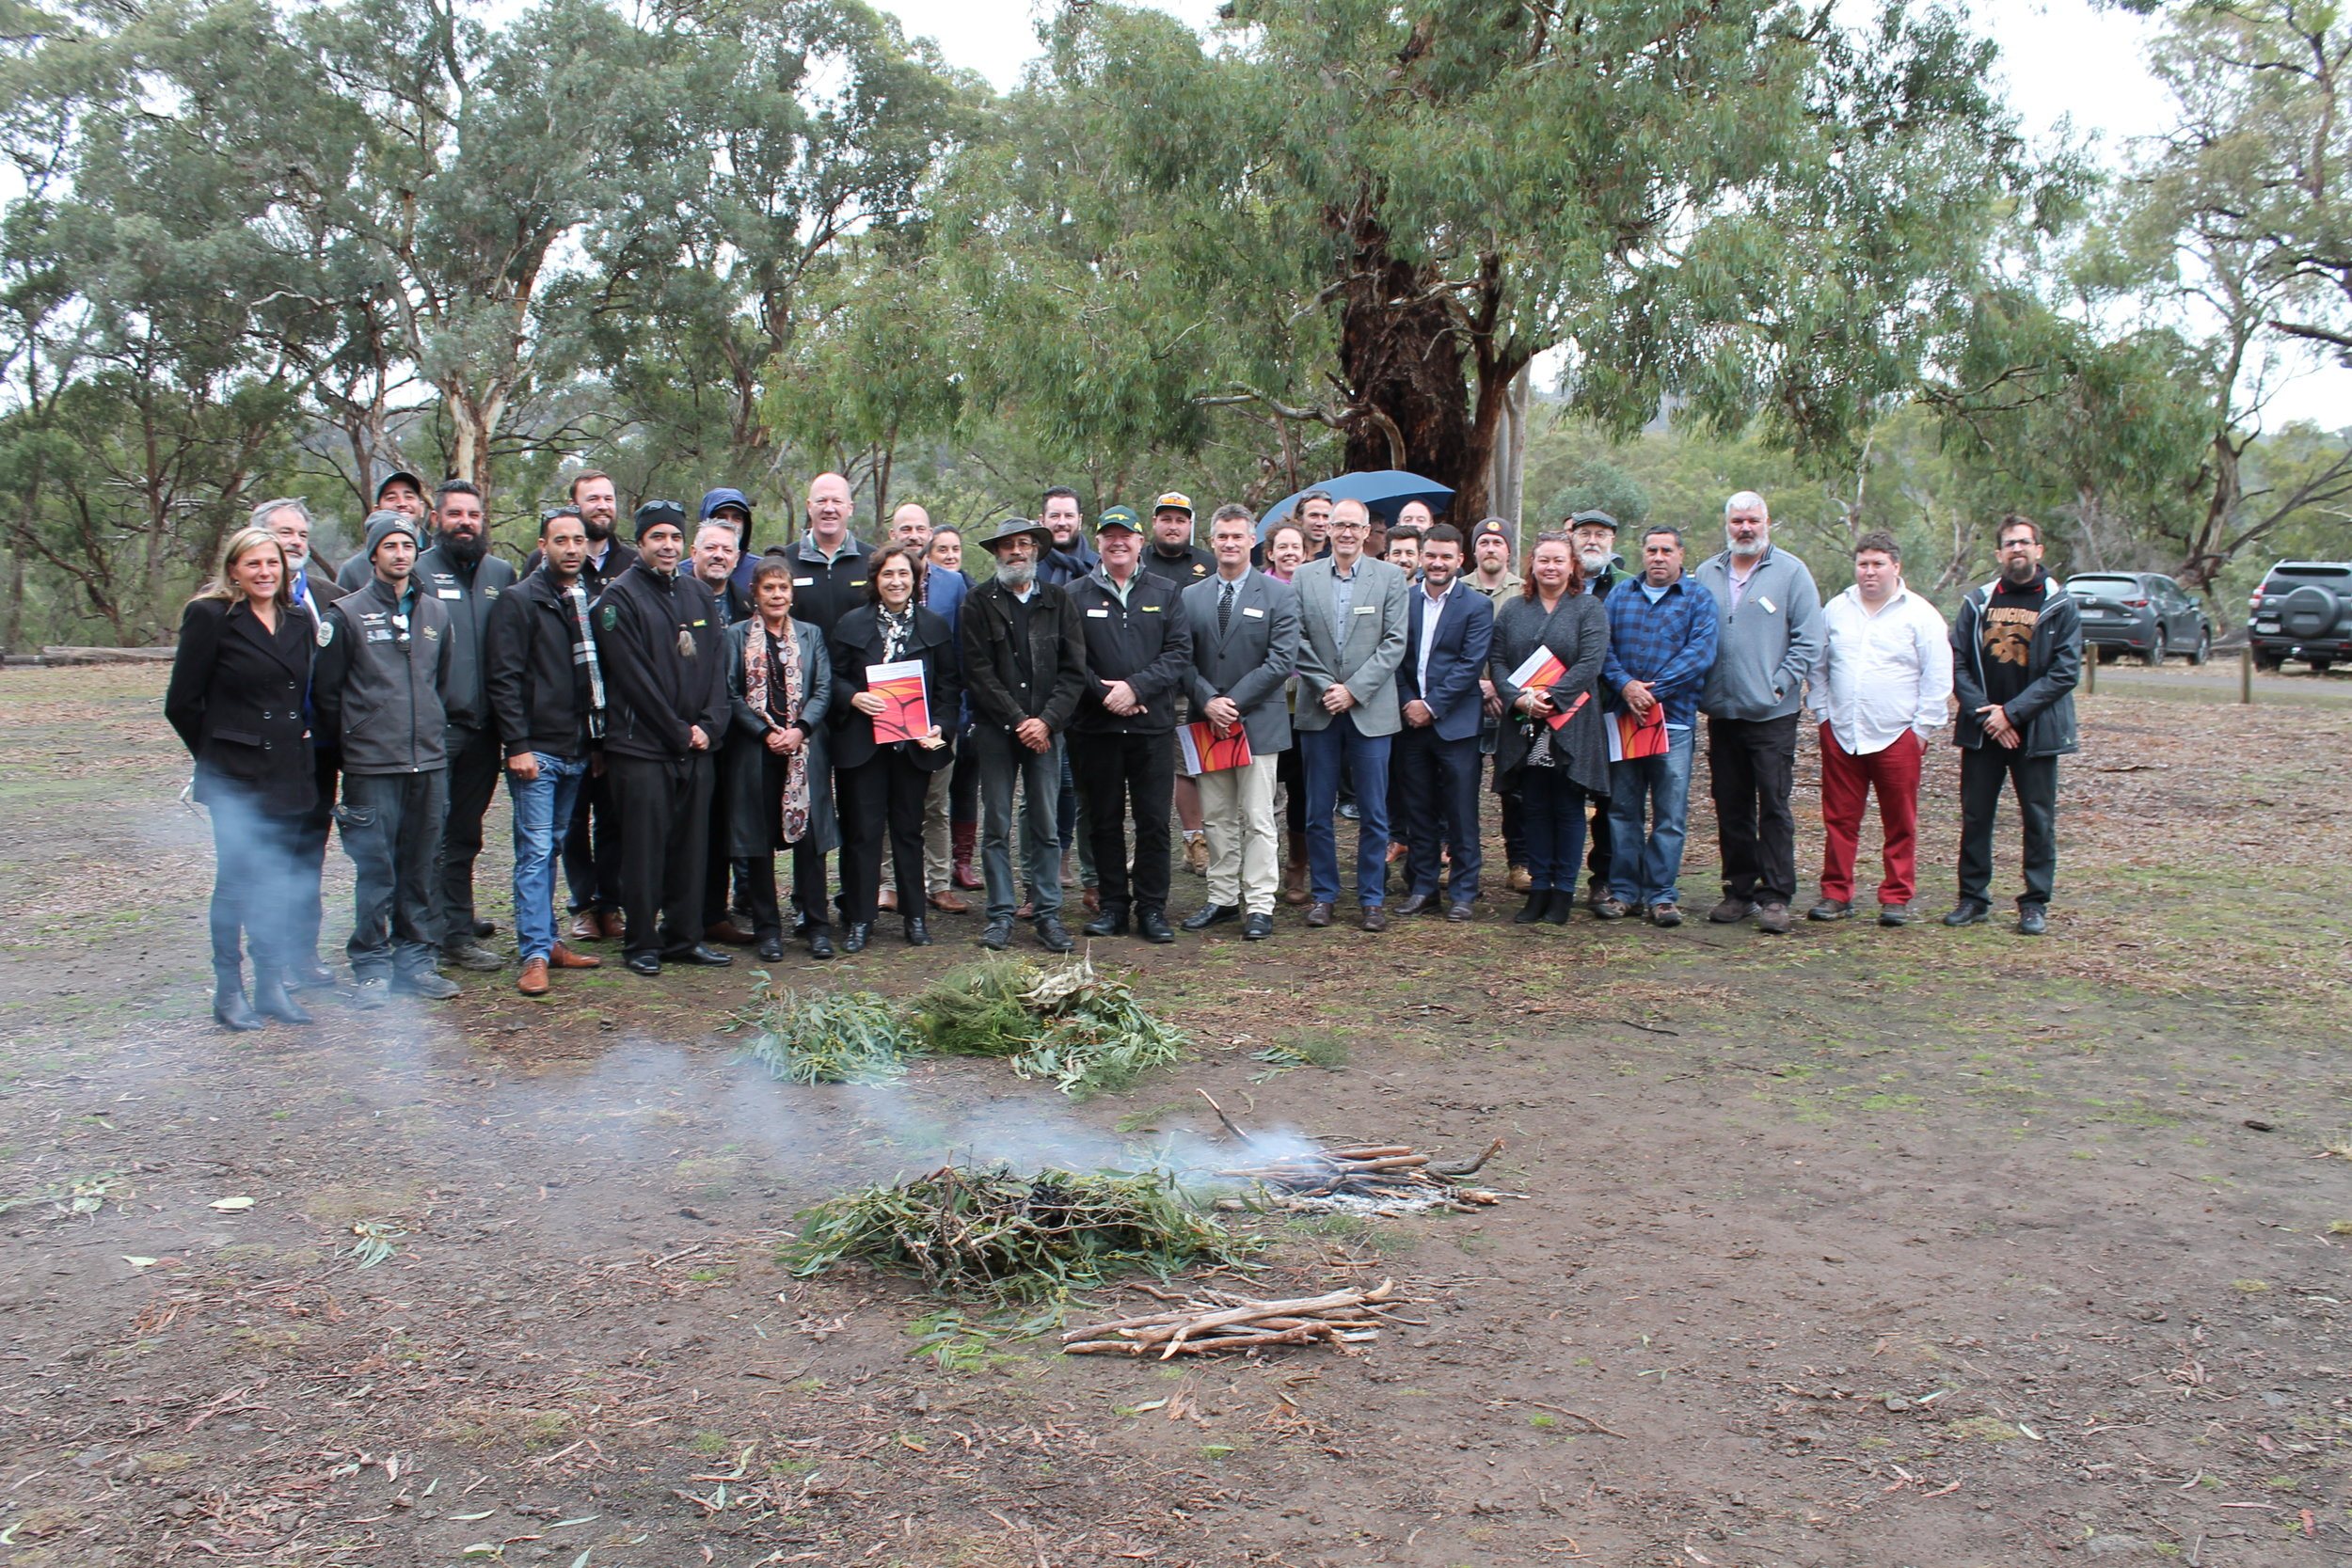 Photo:  The Victorian Traditional Owner Cultural Fire Strategy launch at Nioka Bush Camp on Friday May 10, 2019.